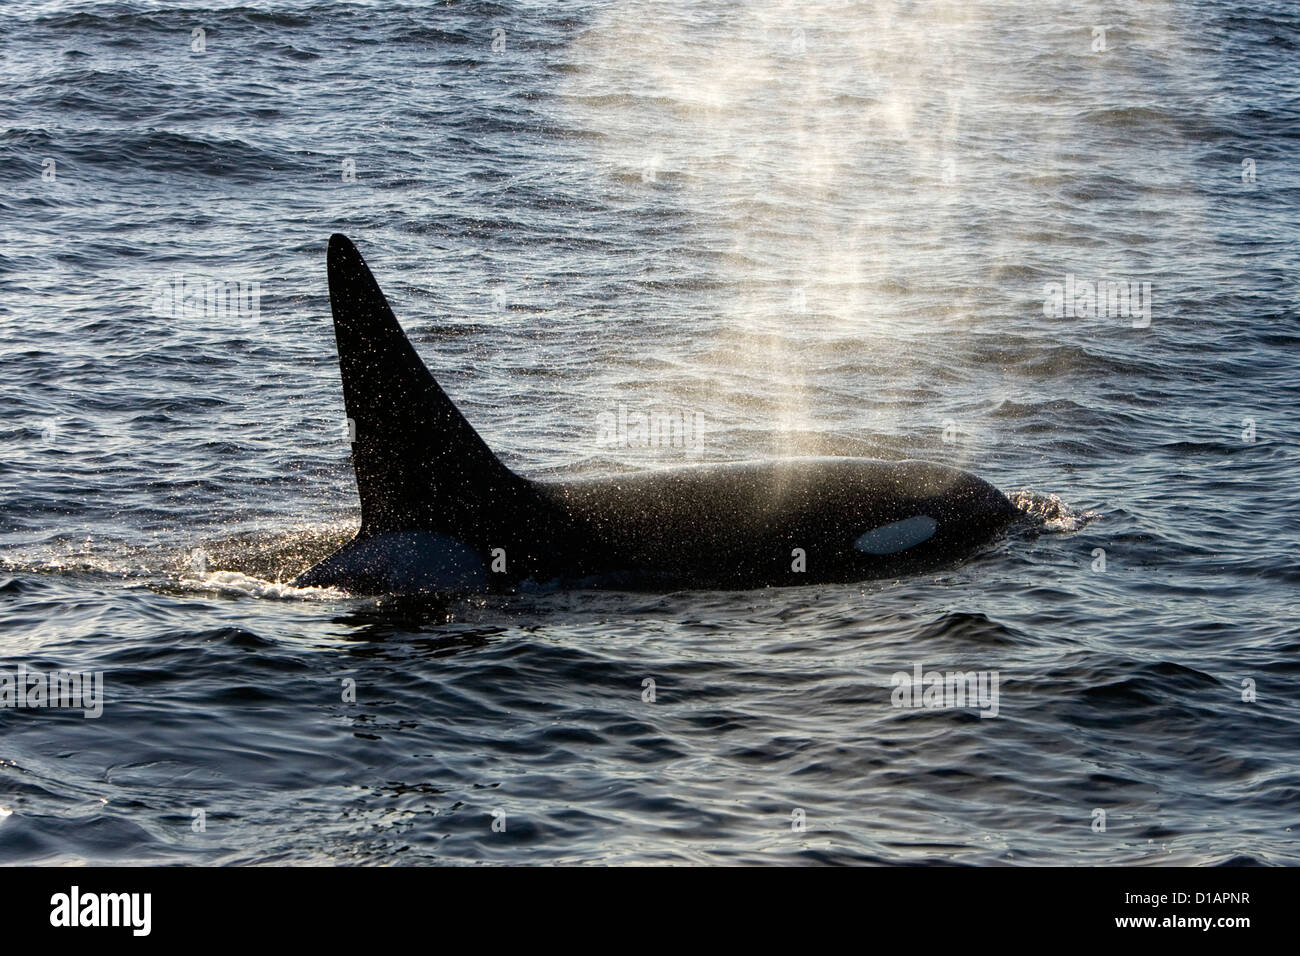 Killer whale, Transient type. Orcinus orca. Monterey Bay, California, USA, Pacific Ocean Stock Photo